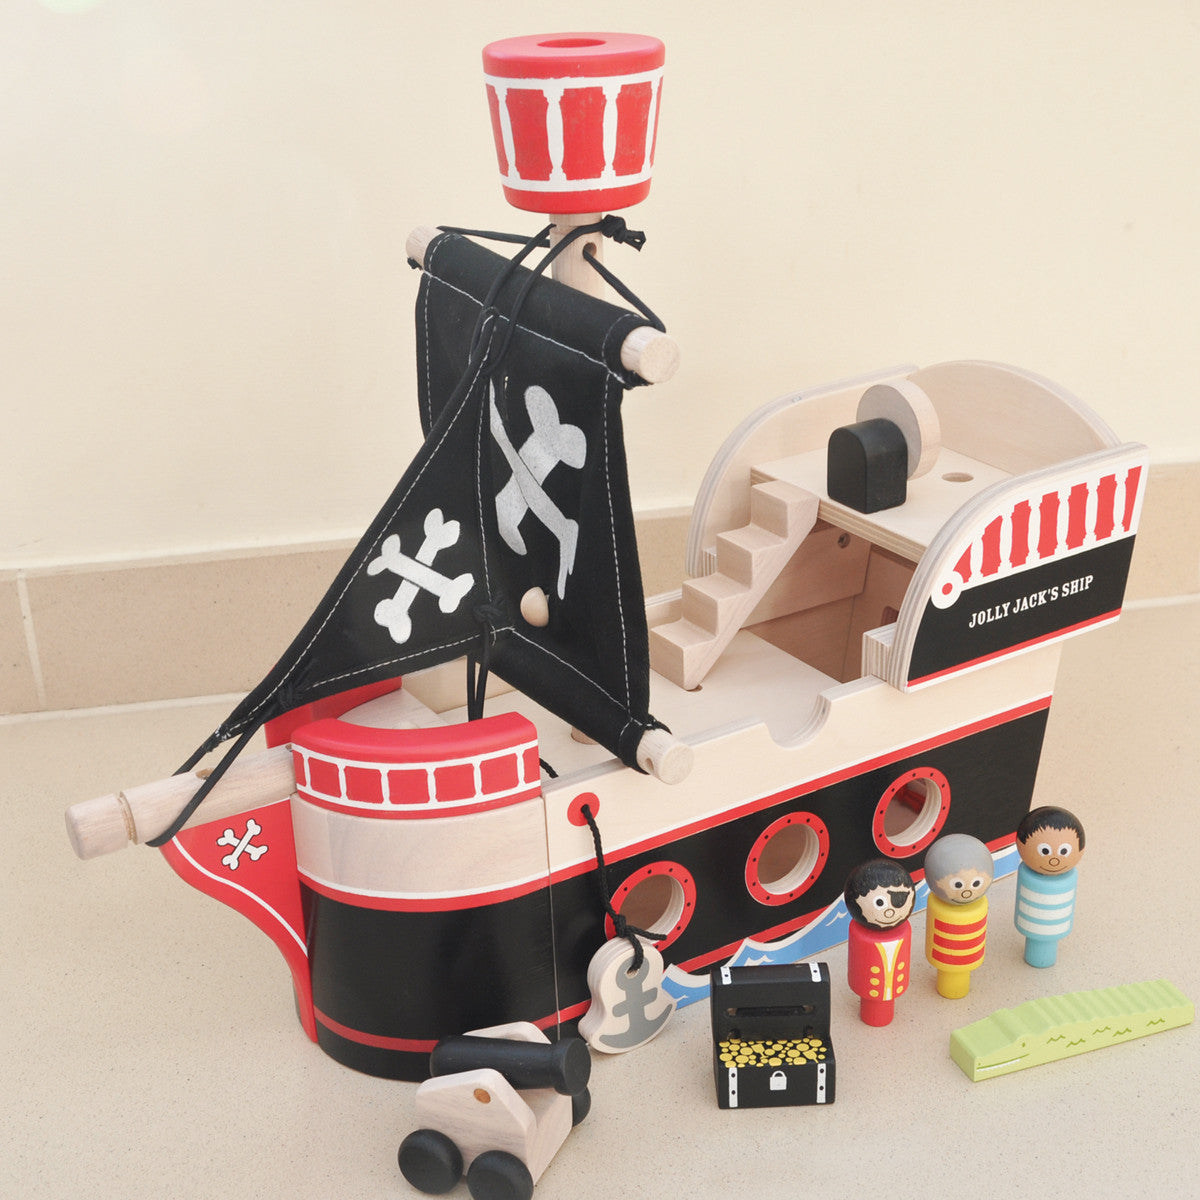 Jolly Jack S Wooden Pirate Ship